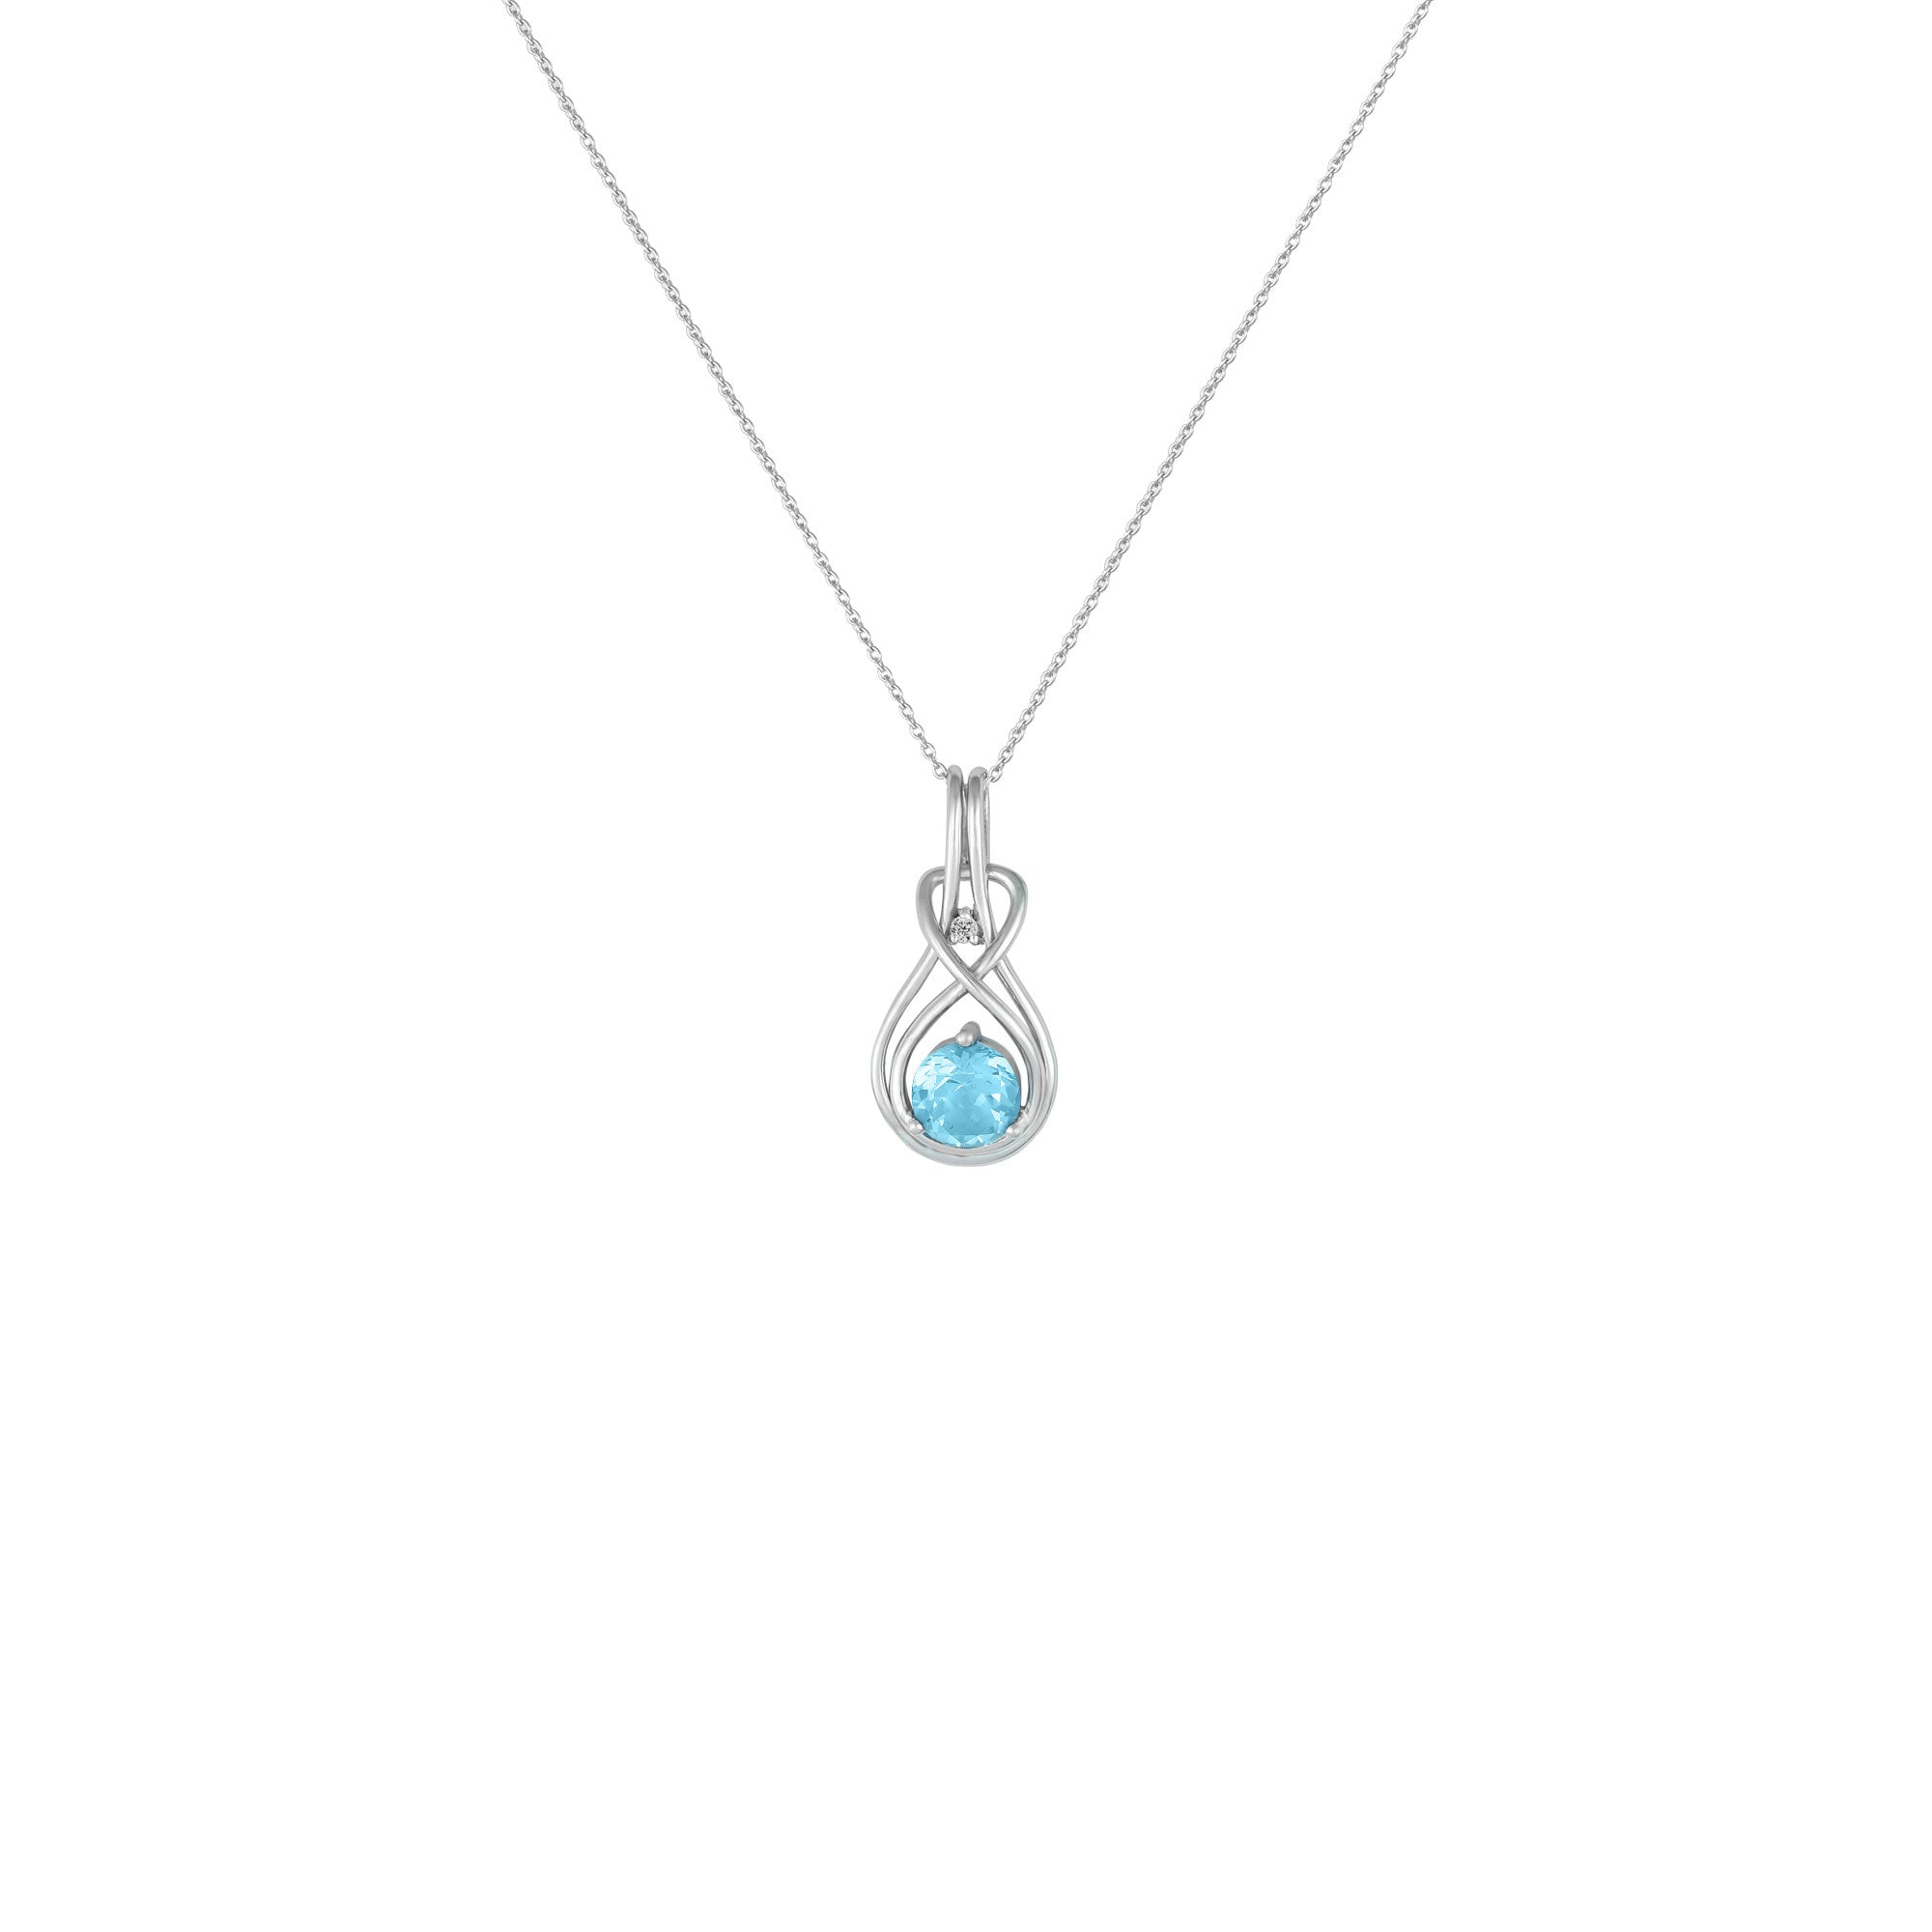 necklace zoom necklaces simply silver zirconia cubic jewellery twist sterling